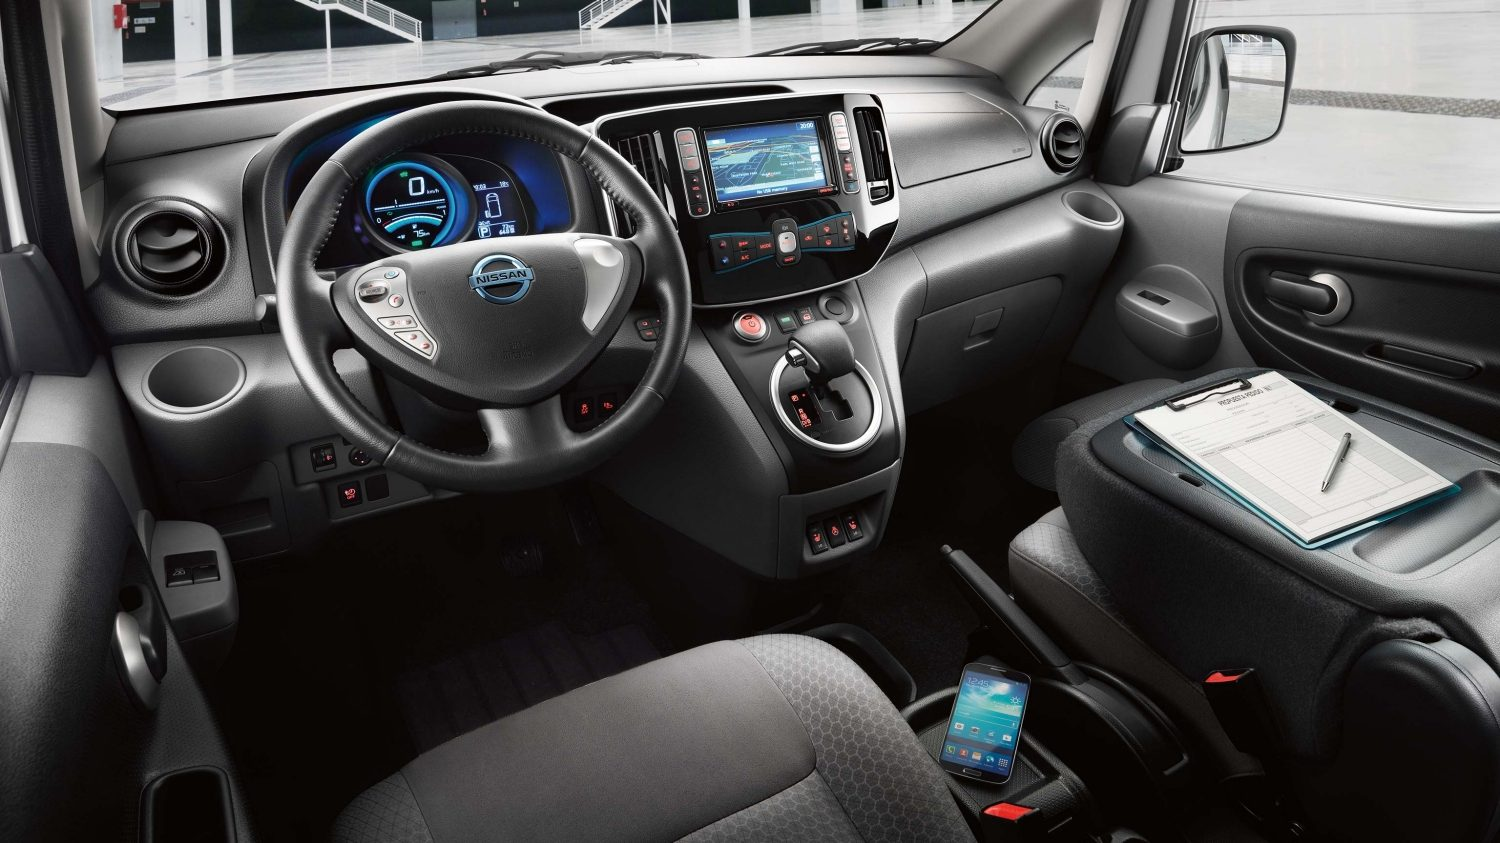 Nissan e-NV200 - Interior showing mobile office